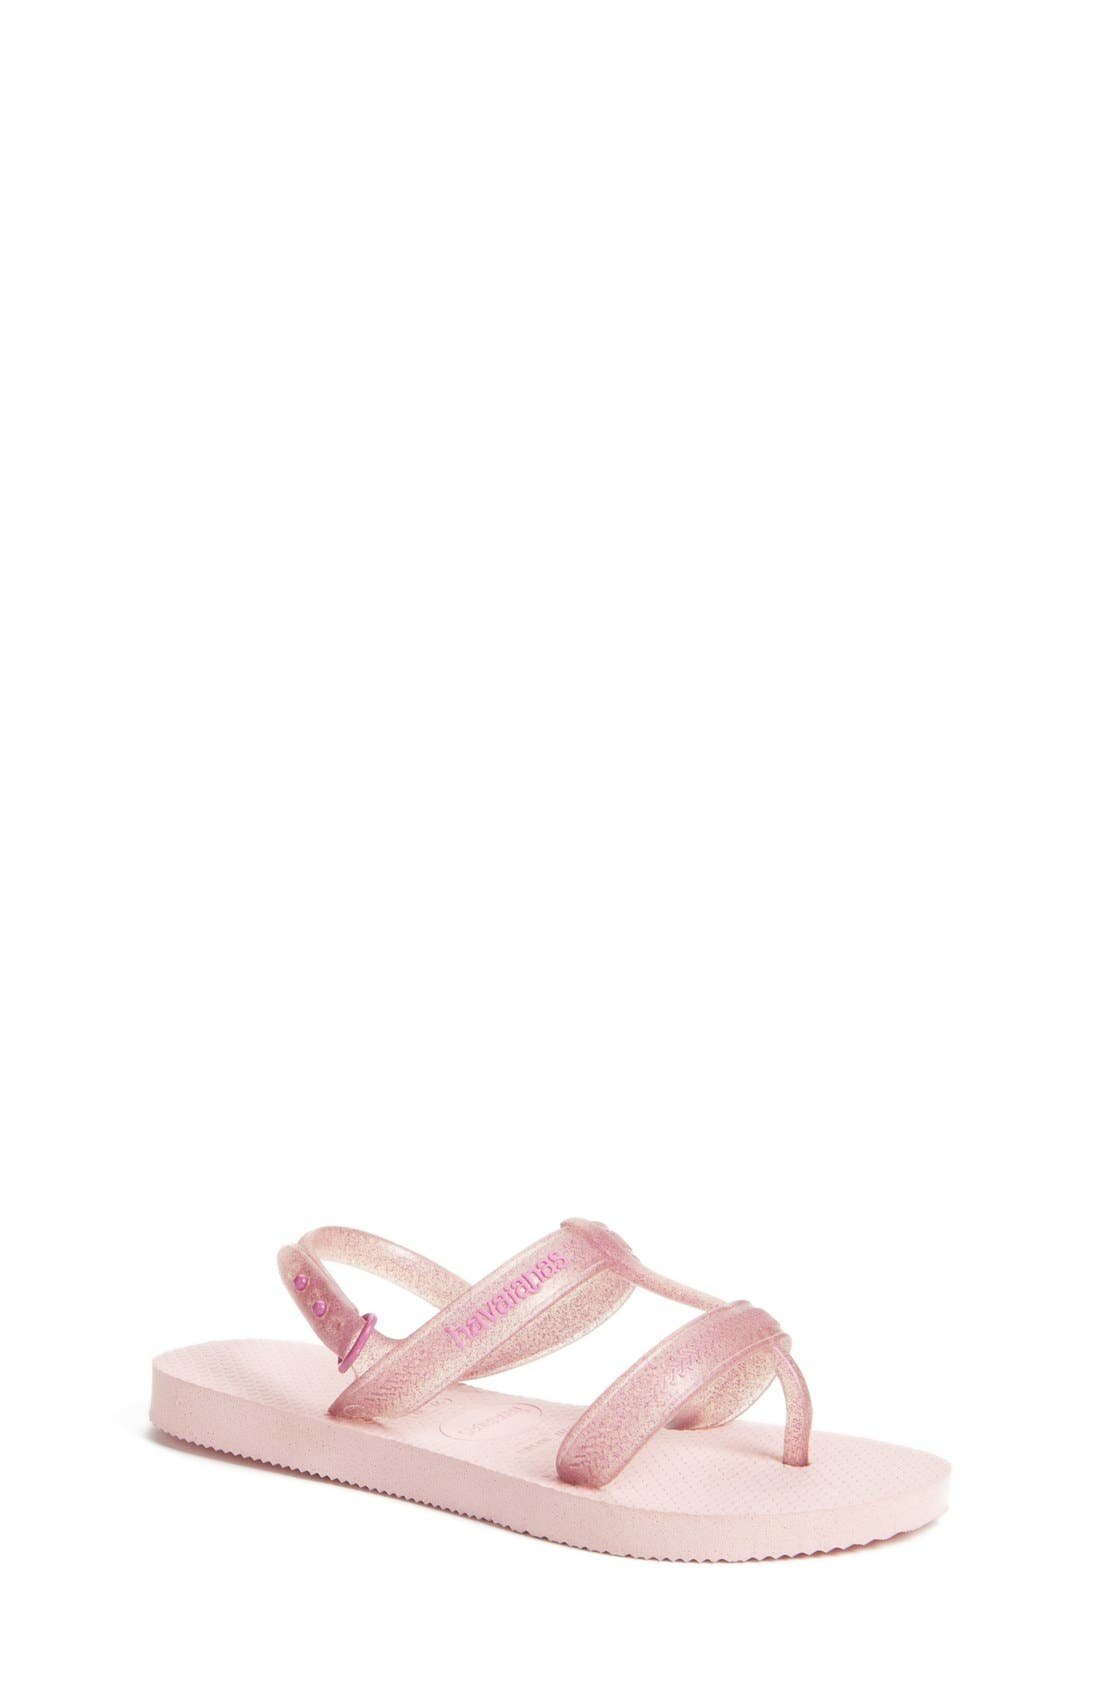 'Joy' Sandal,                         Main,                         color, Pink